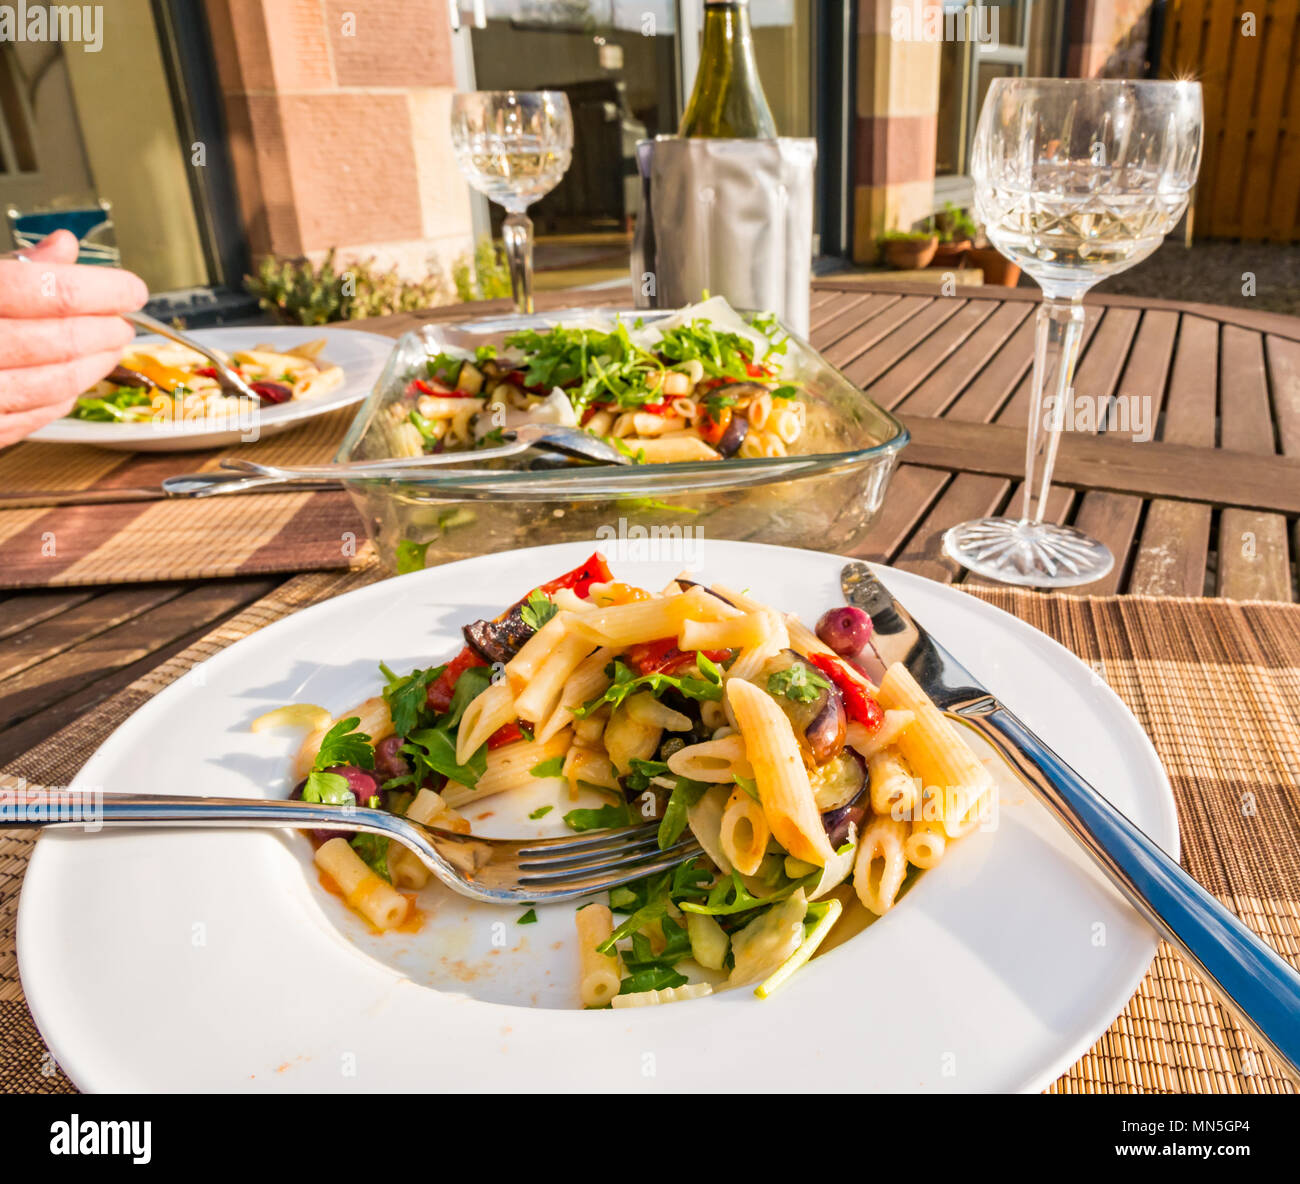 outdoor-table-with-pasta-salad-served-on